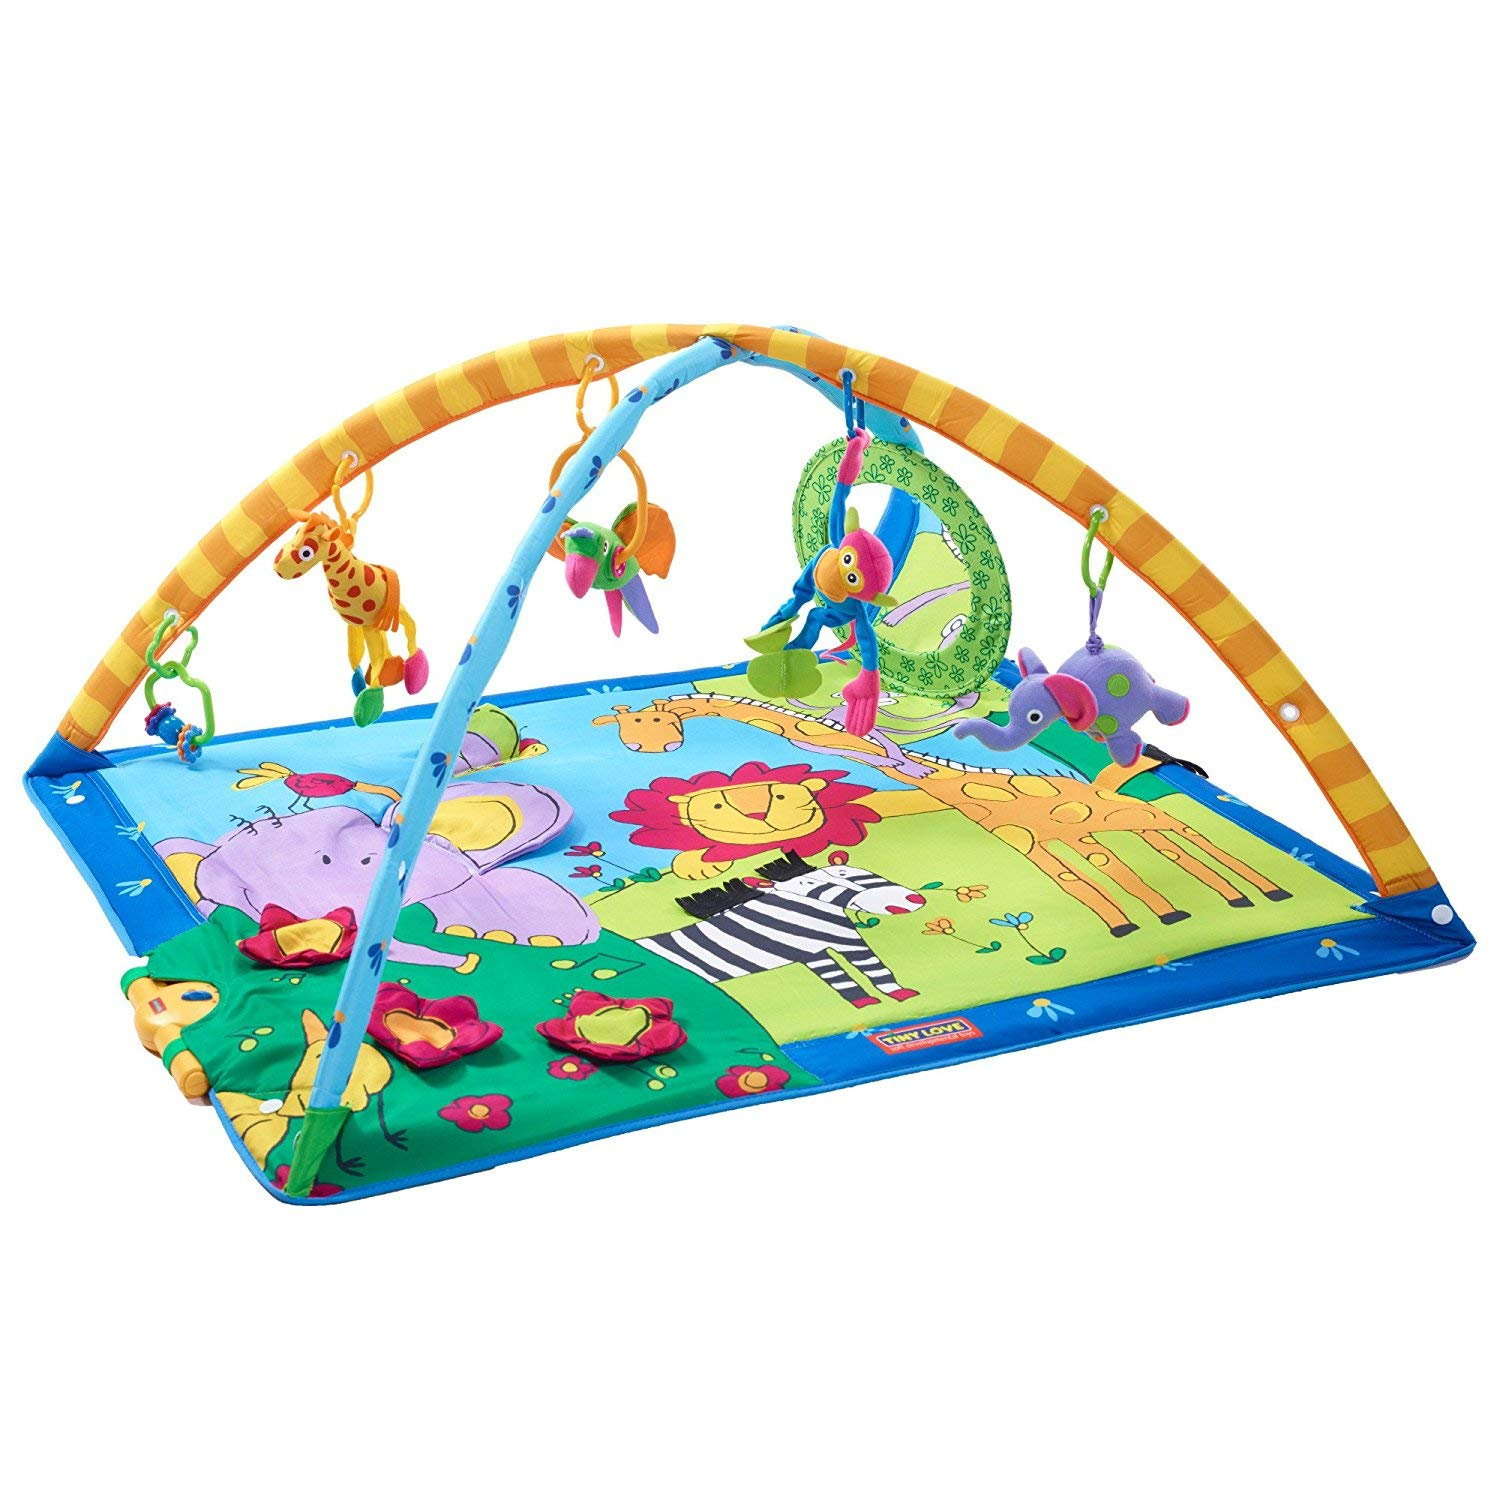 Tiny Love Meadow Days Dynamic Gymini Activity Play Mat Dorel Juvenile Group-CA TO023